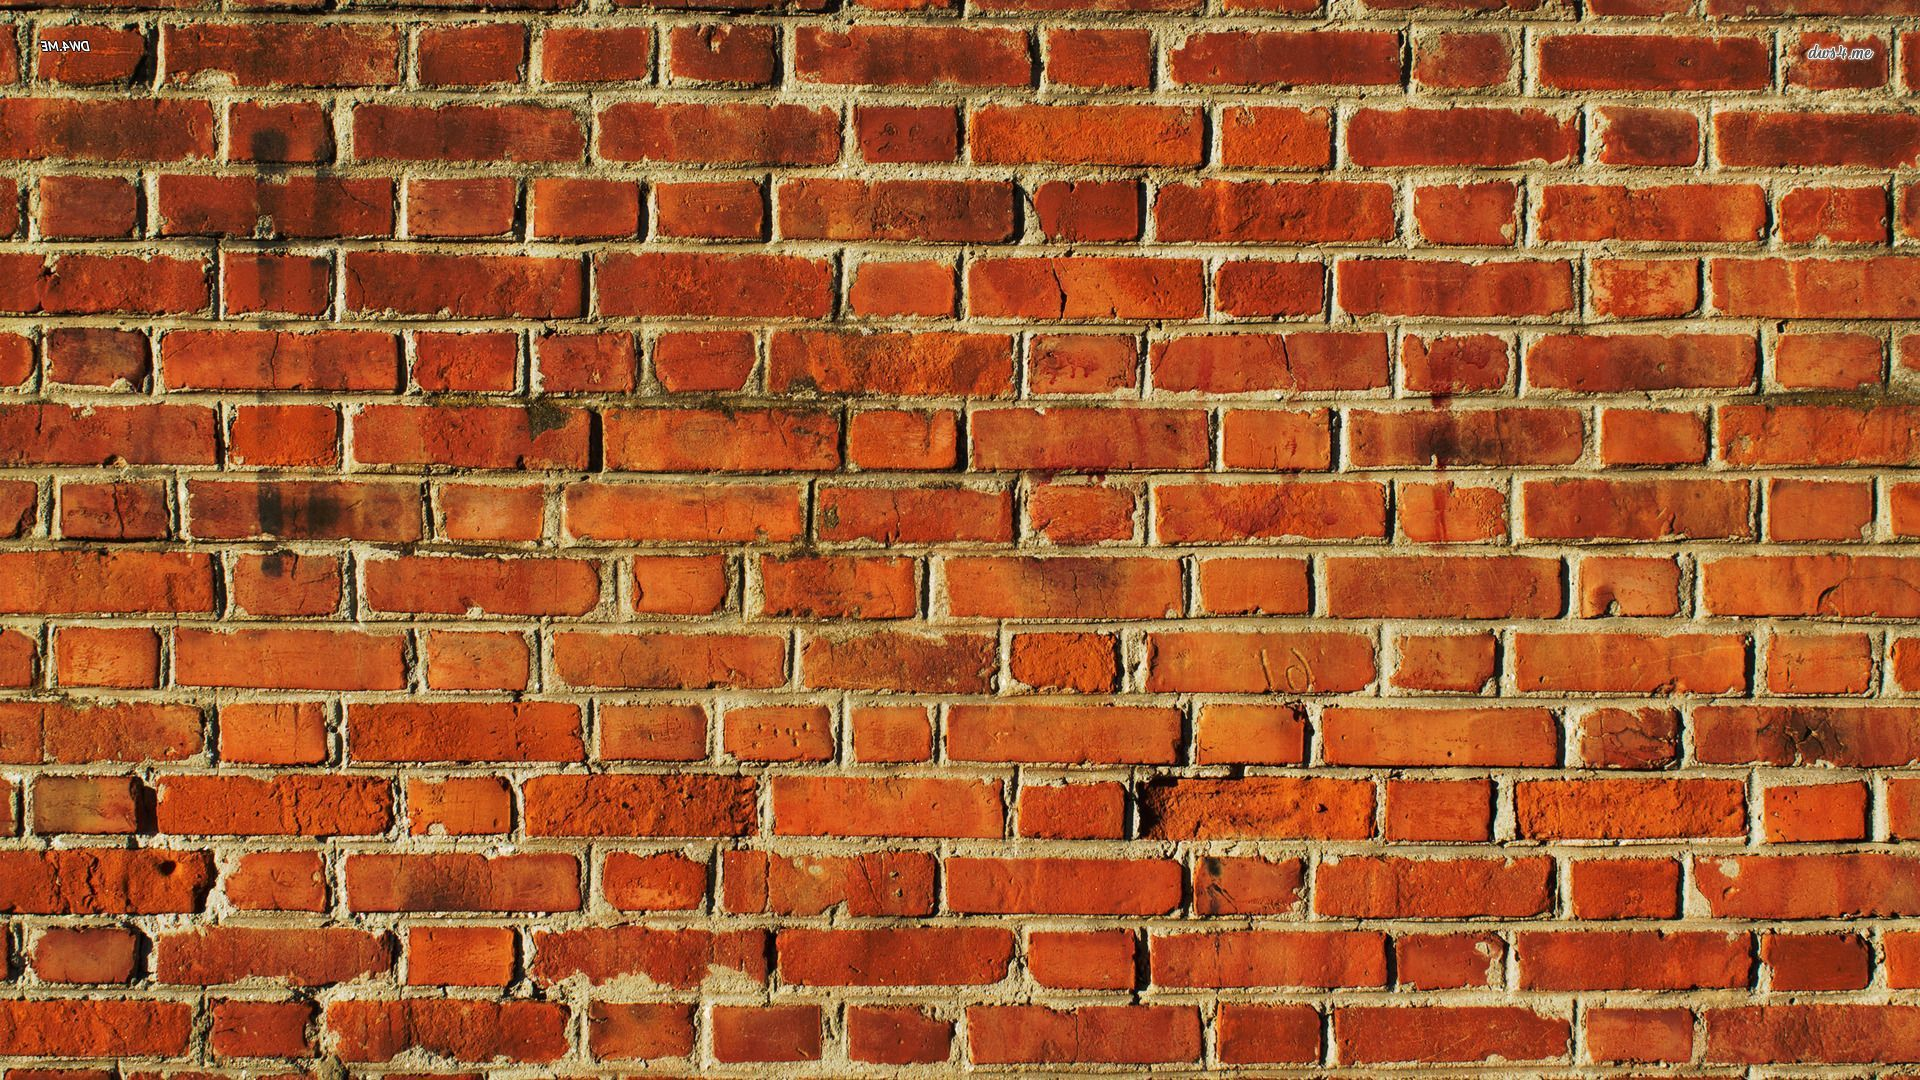 40 hd brick wallpapers backgrounds for free download for Pretty wallpaper for walls